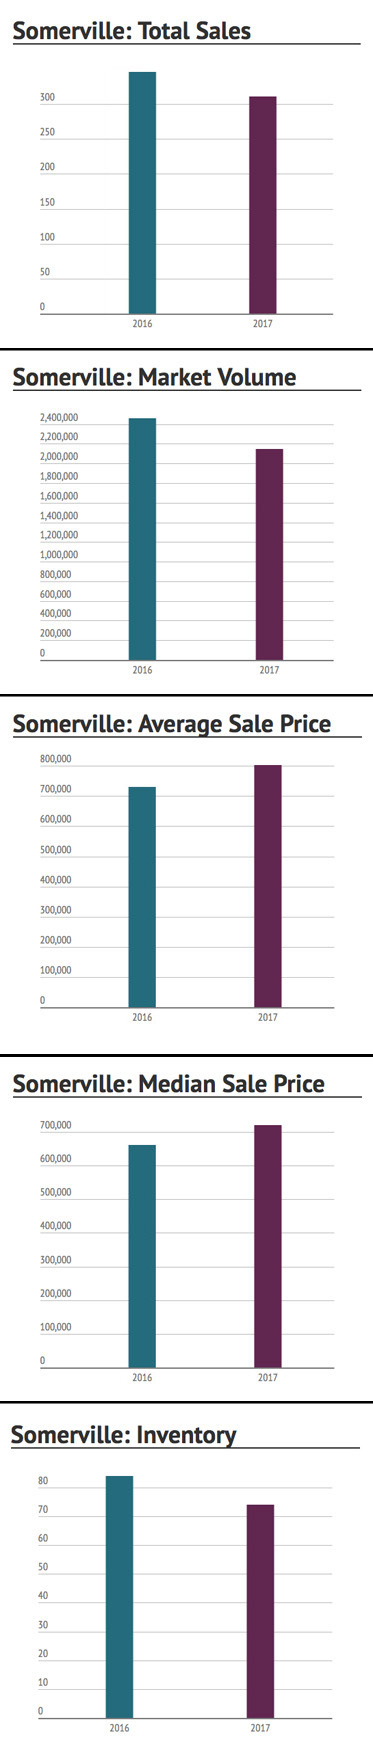 Somerville First Half of 2017